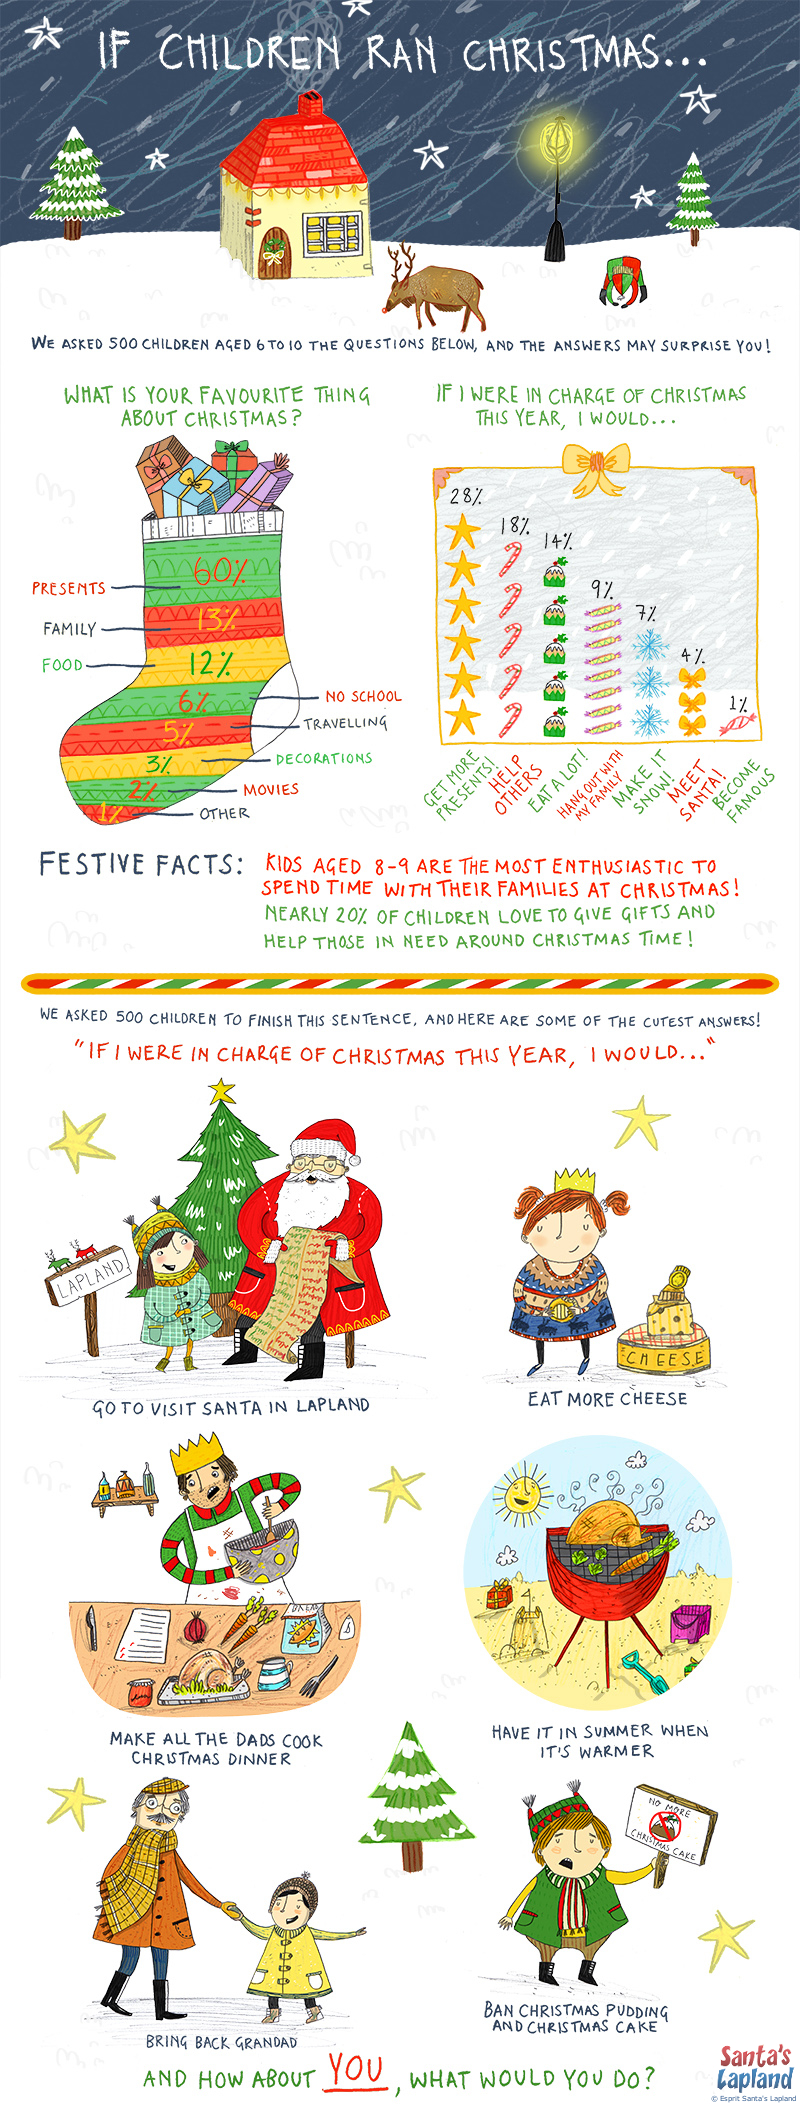 If Children Ran Christmas...